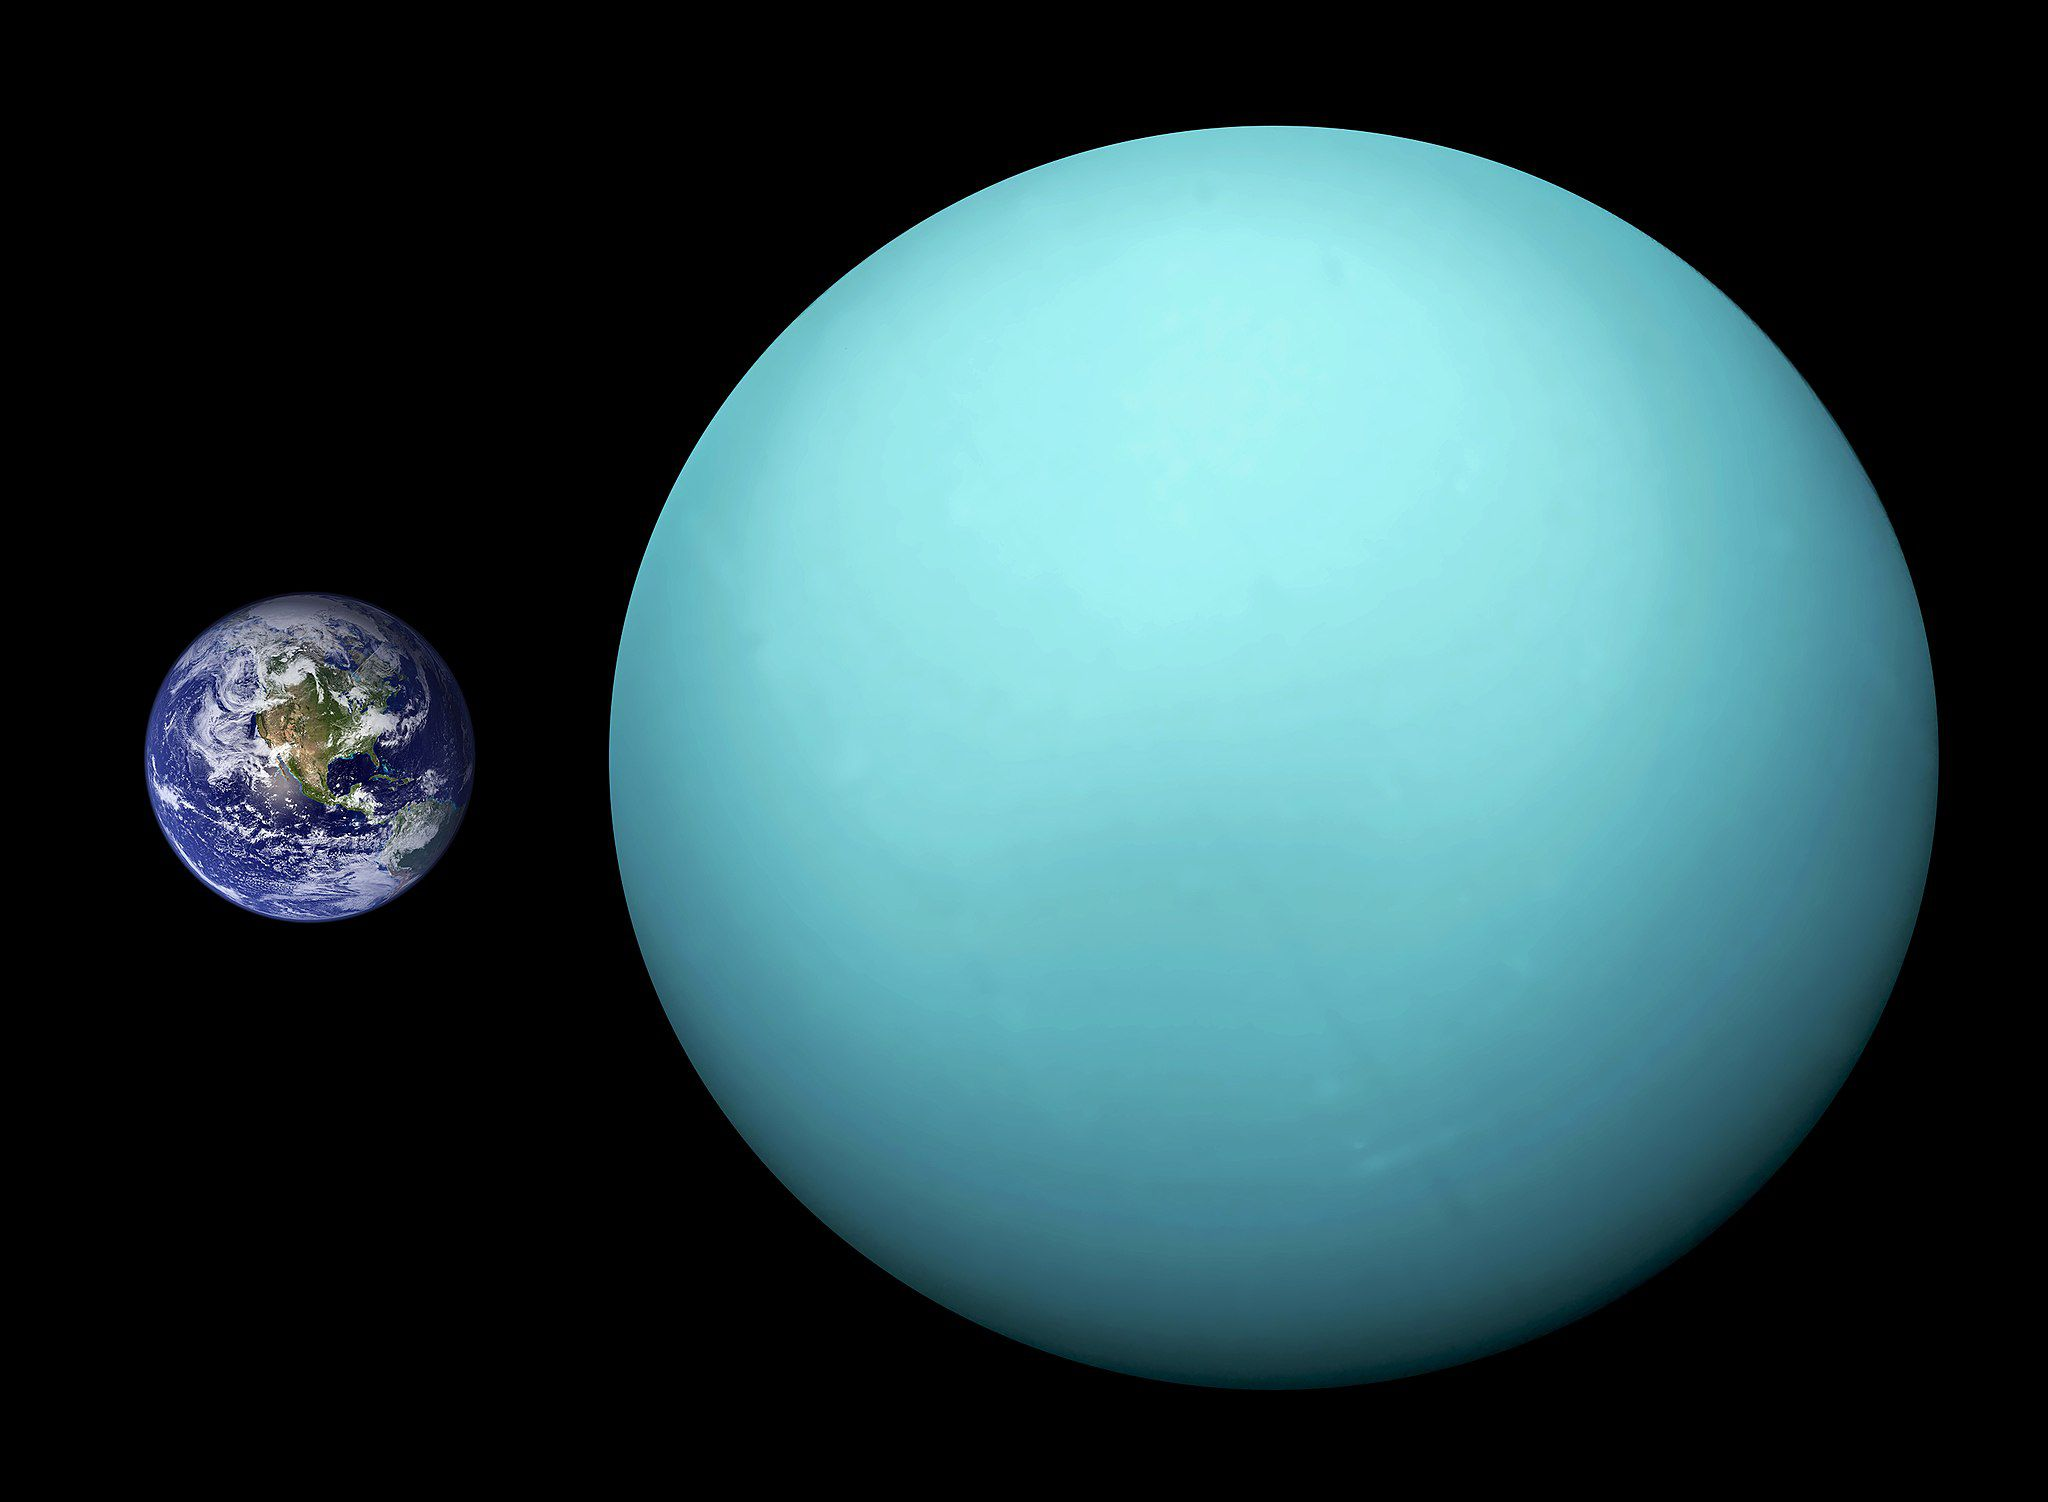 a comparison of sizes between Uranus and planet Earth